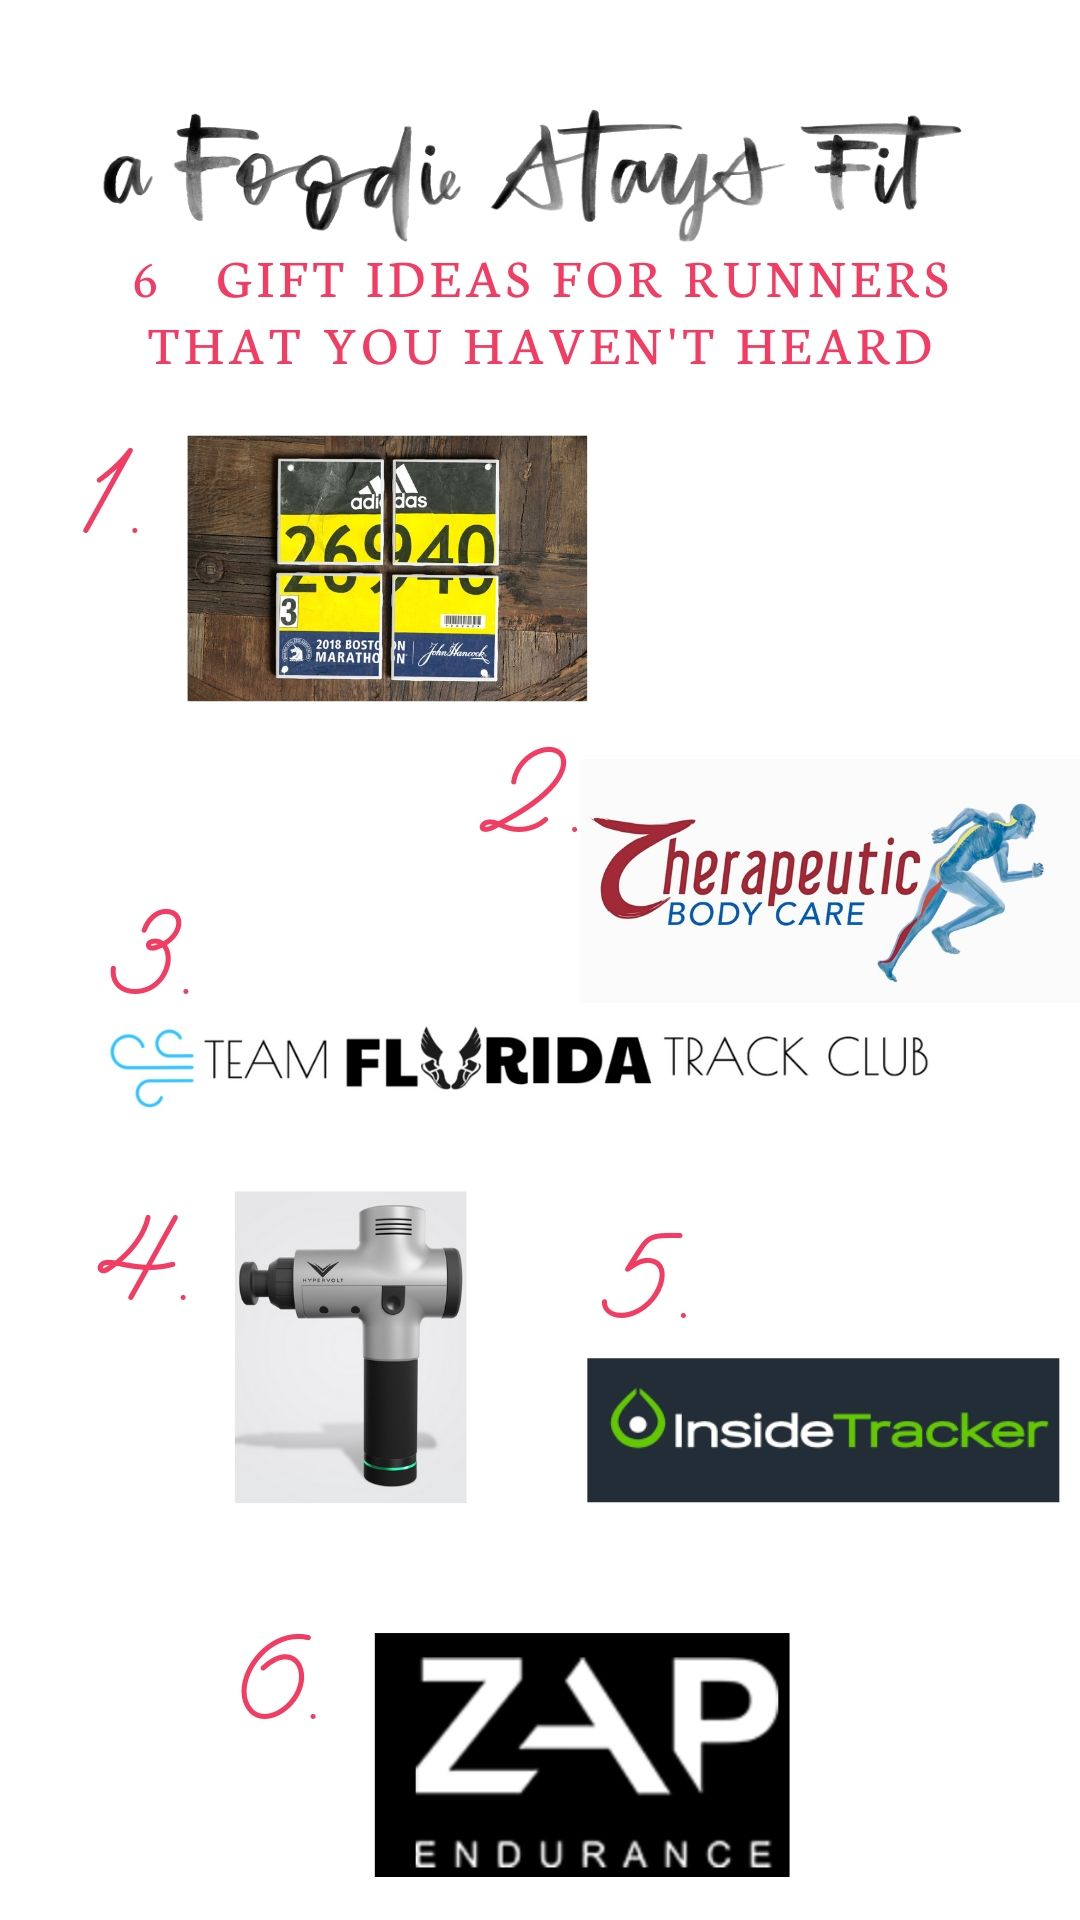 Unique Gifts For Runners | A Foodie Stays Fit